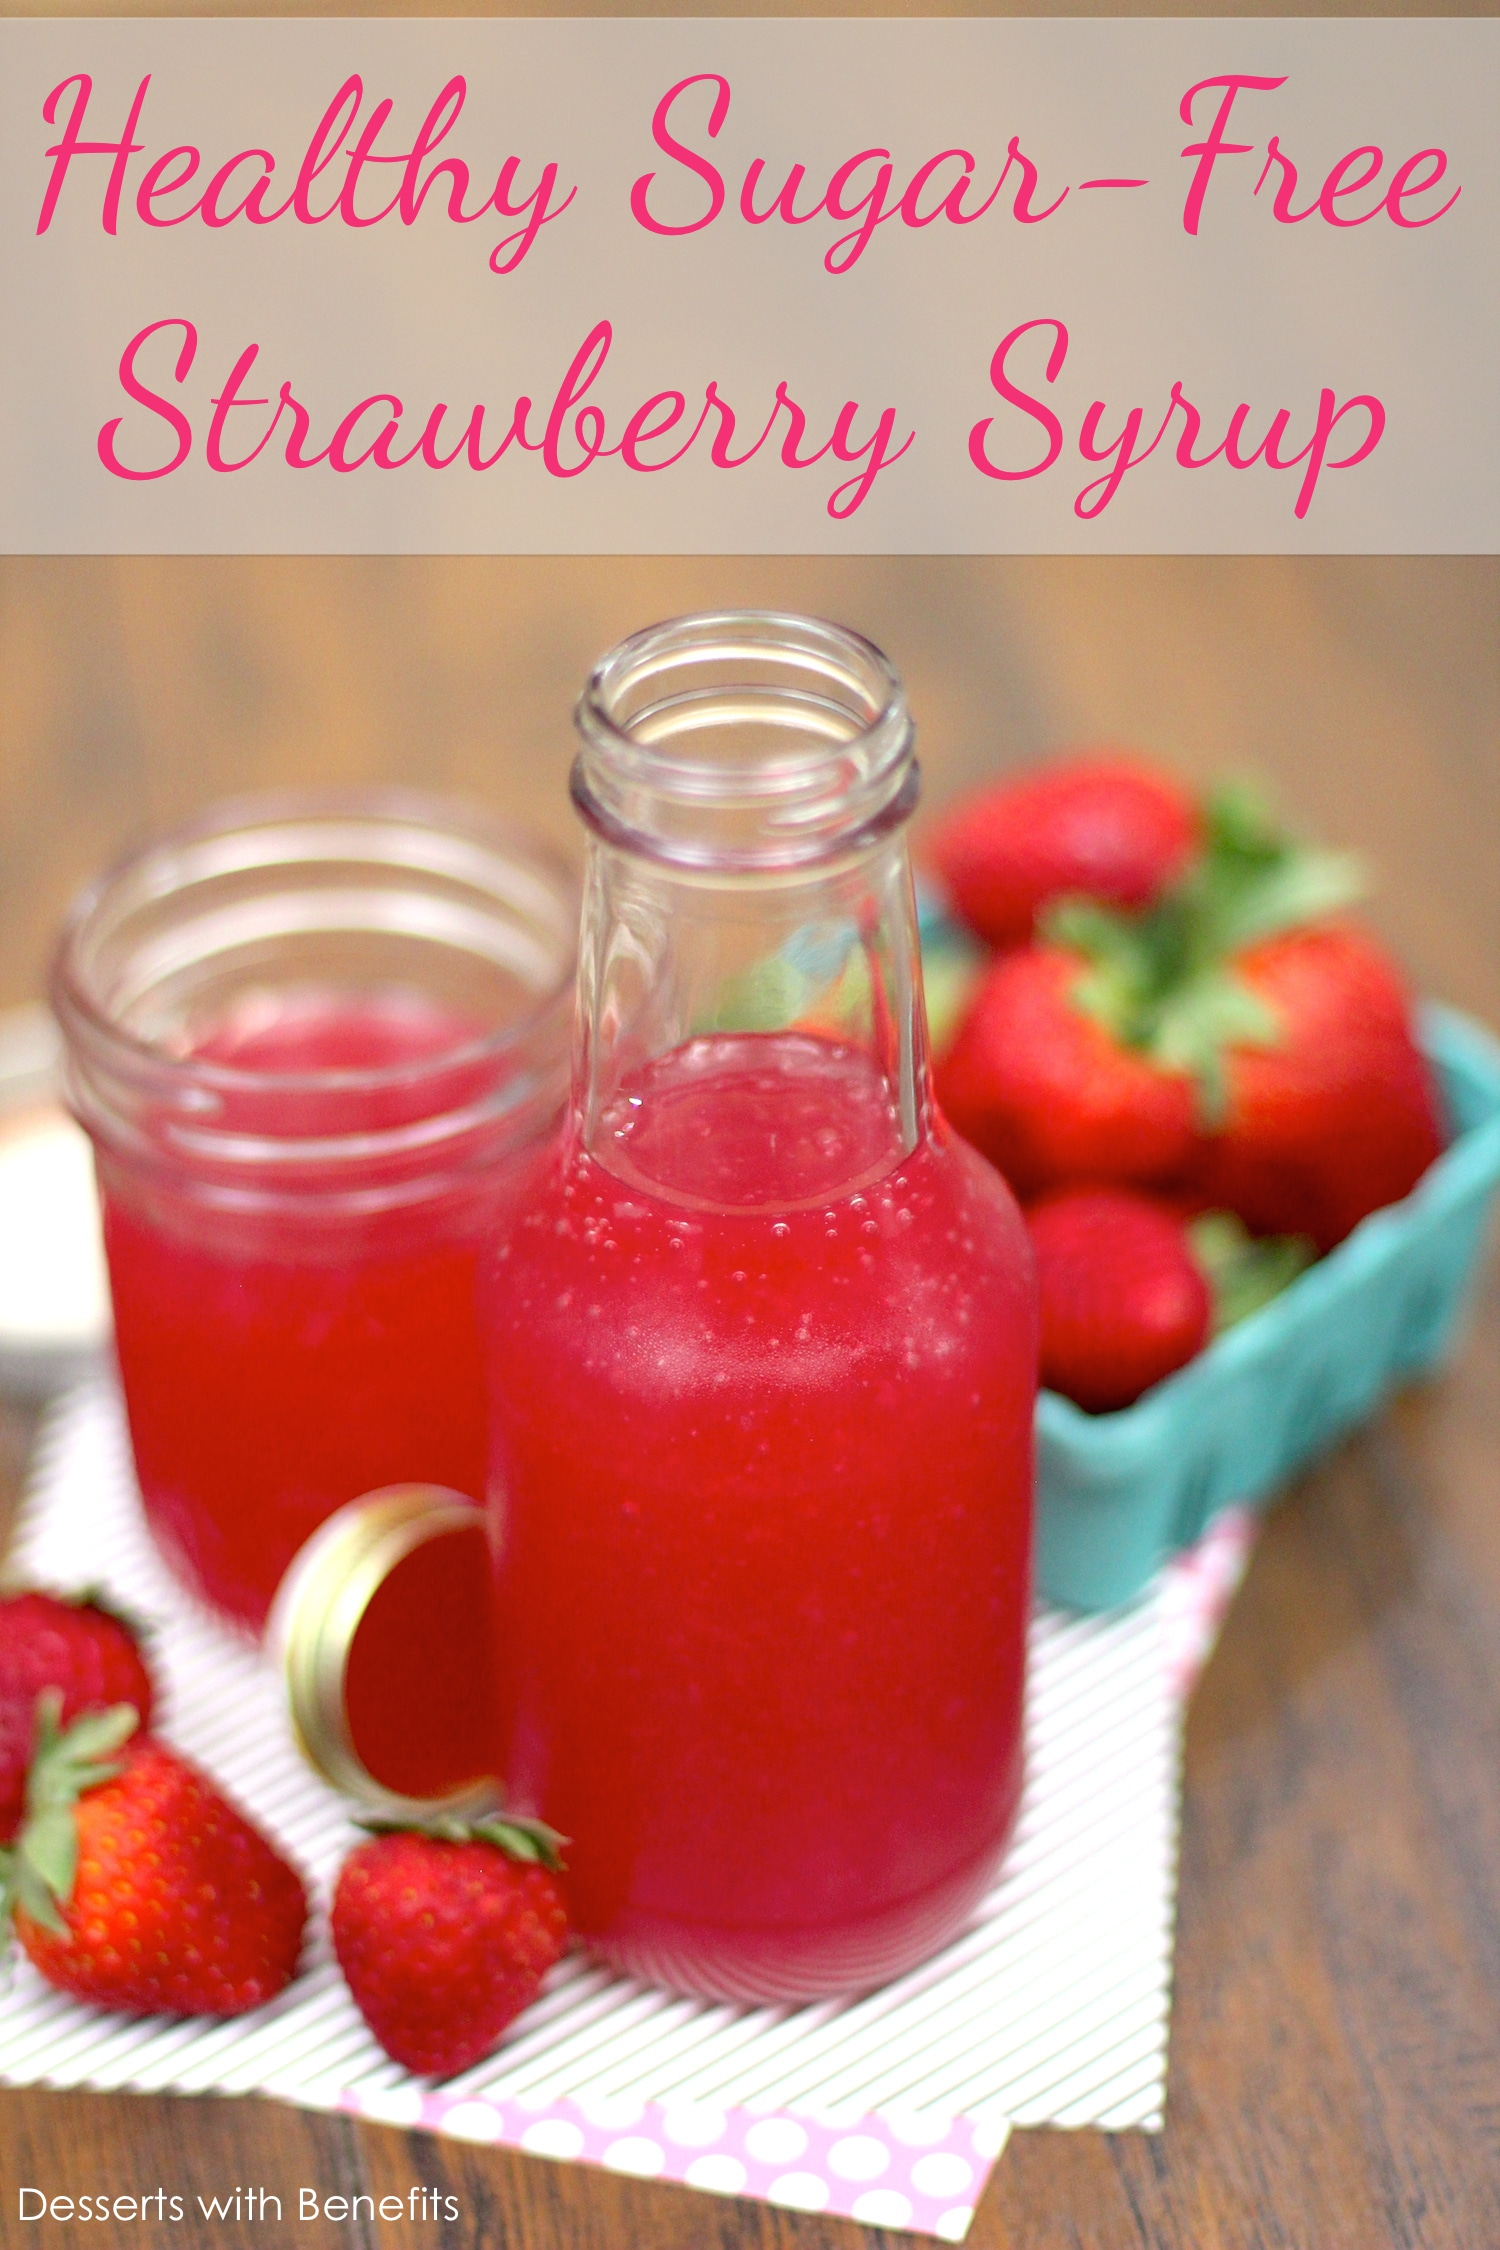 This Healthy Sugar-Free Strawberry Syrup tastes like strawberries in liquid form. You'd never know it's fat free, sugar free, low carb and 5 calories per serving! Perfect for topping pancakes, oatmeal, yogurt and more. -- Healthy Dessert Recipes at the Desserts With Benefits Blog